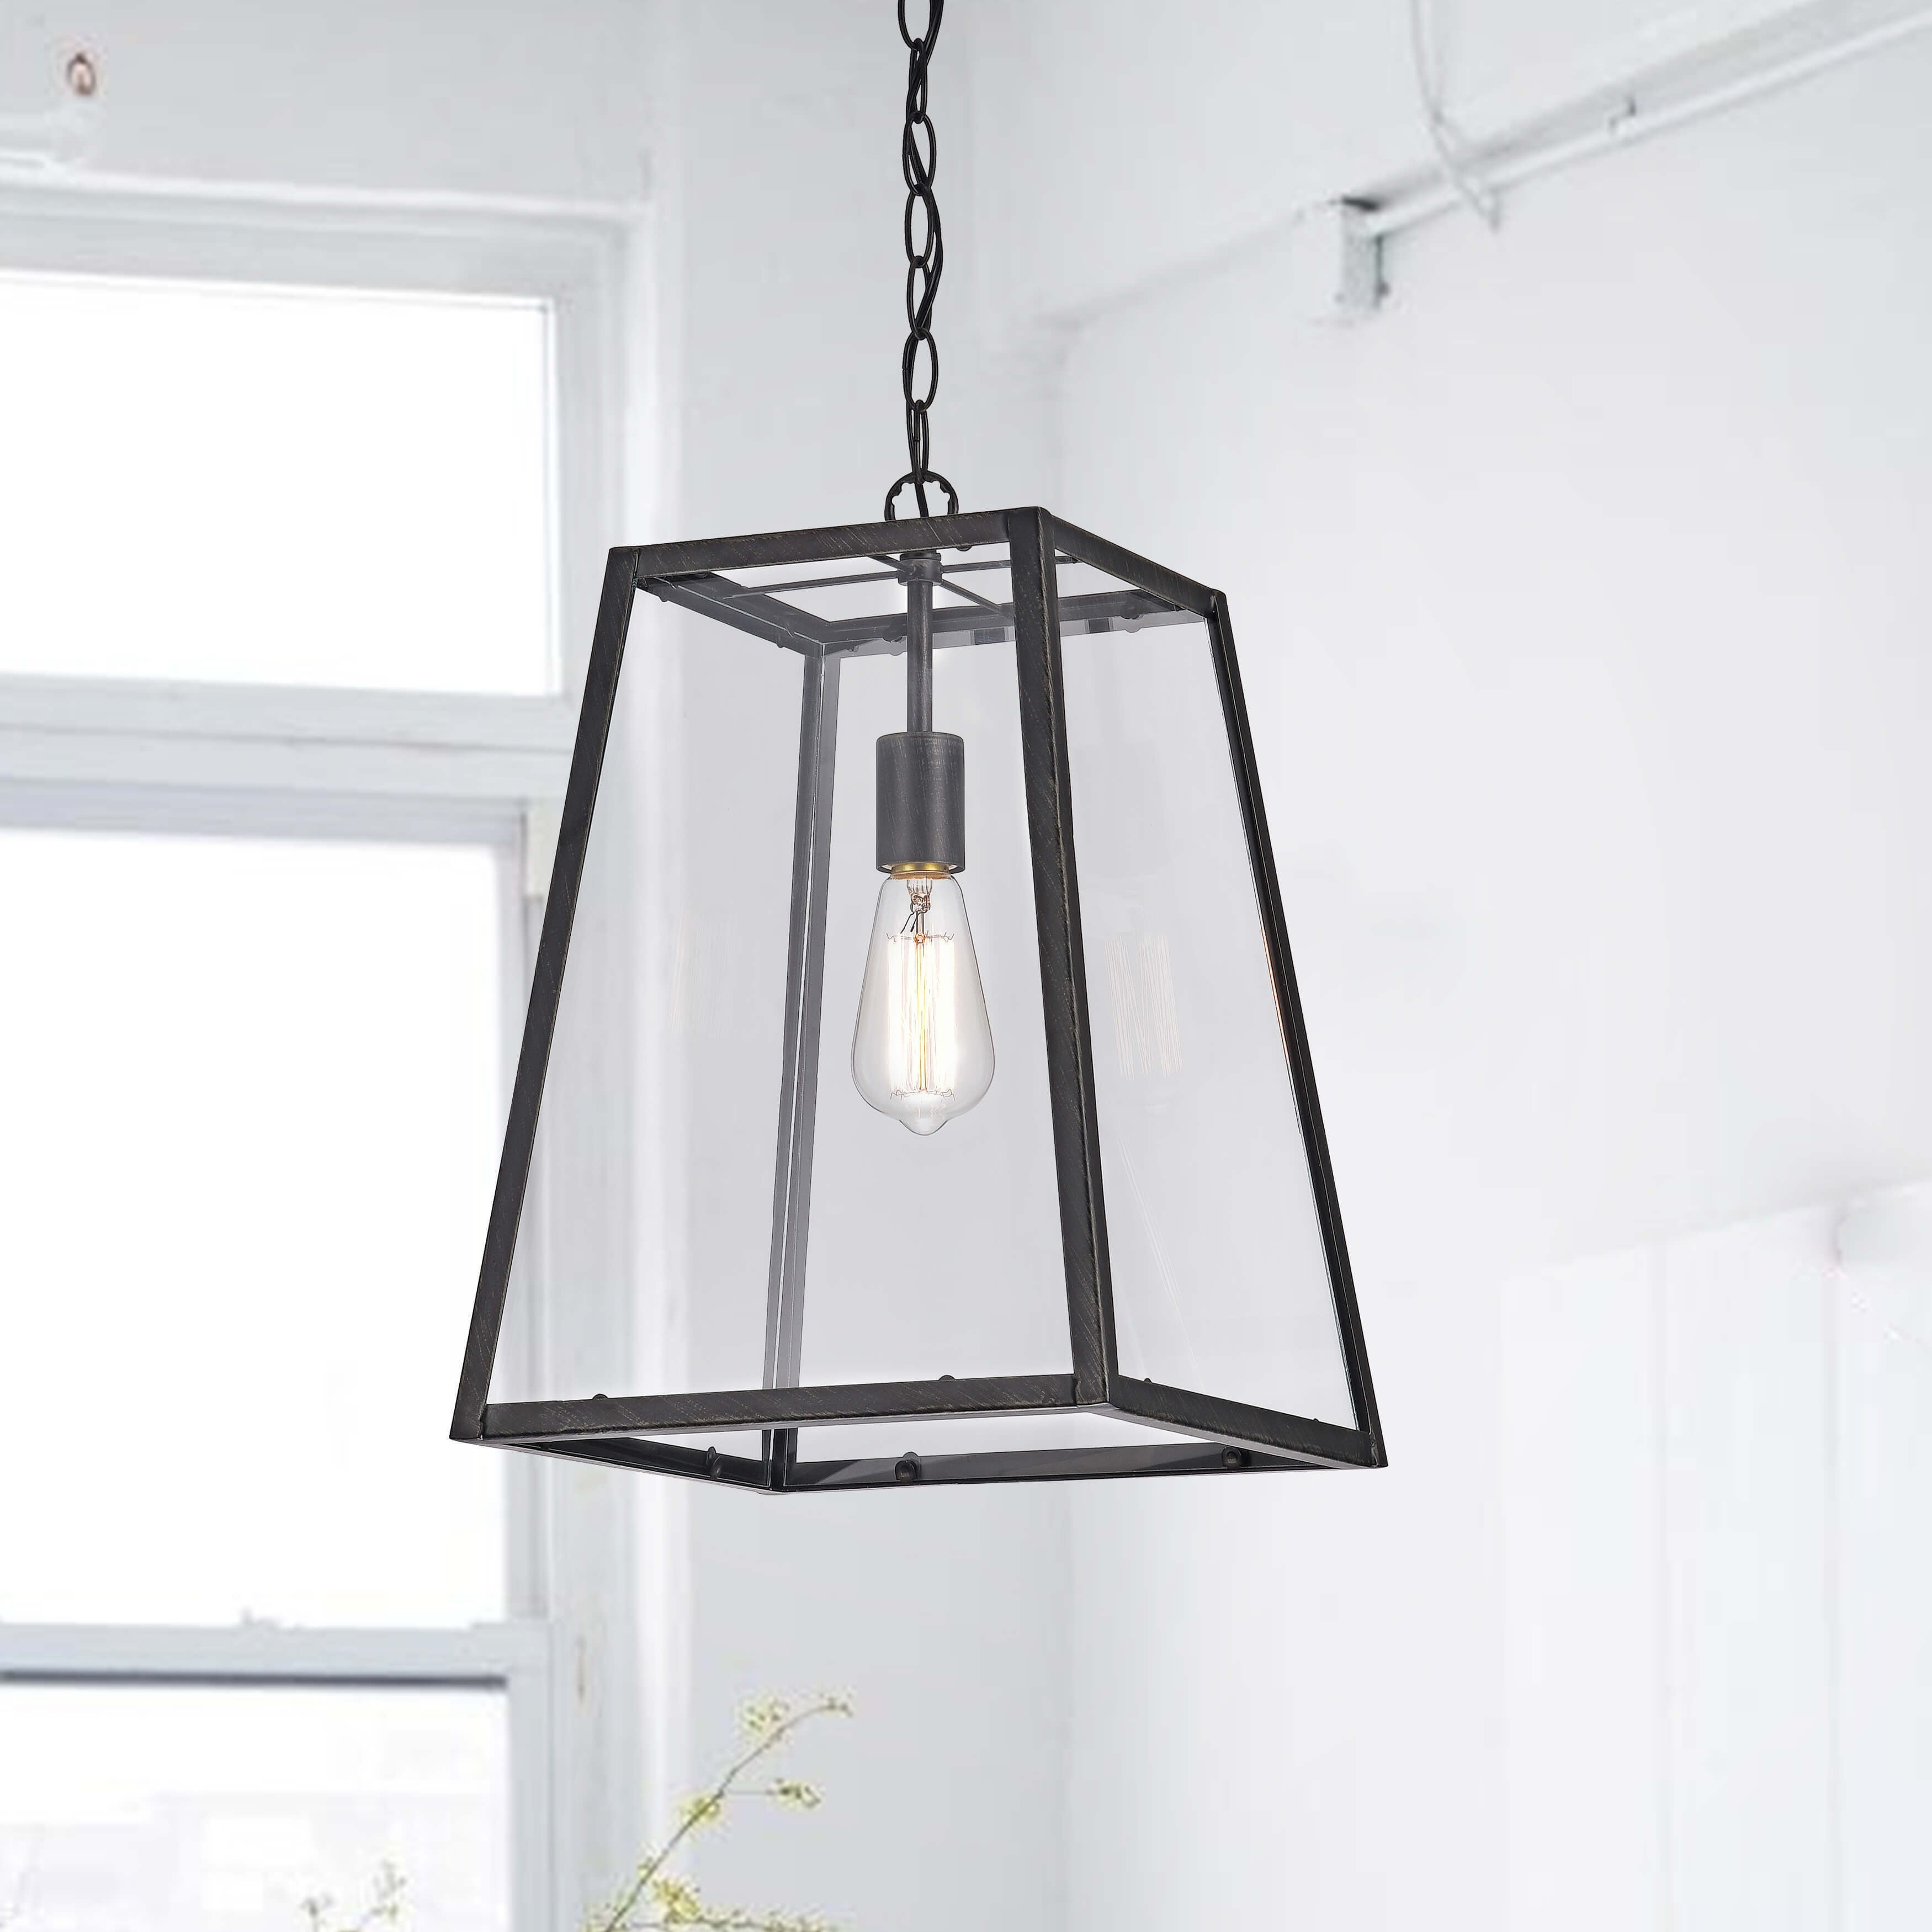 Buy Industrial Ceiling Lights Online at Overstock.com | Our Best ...